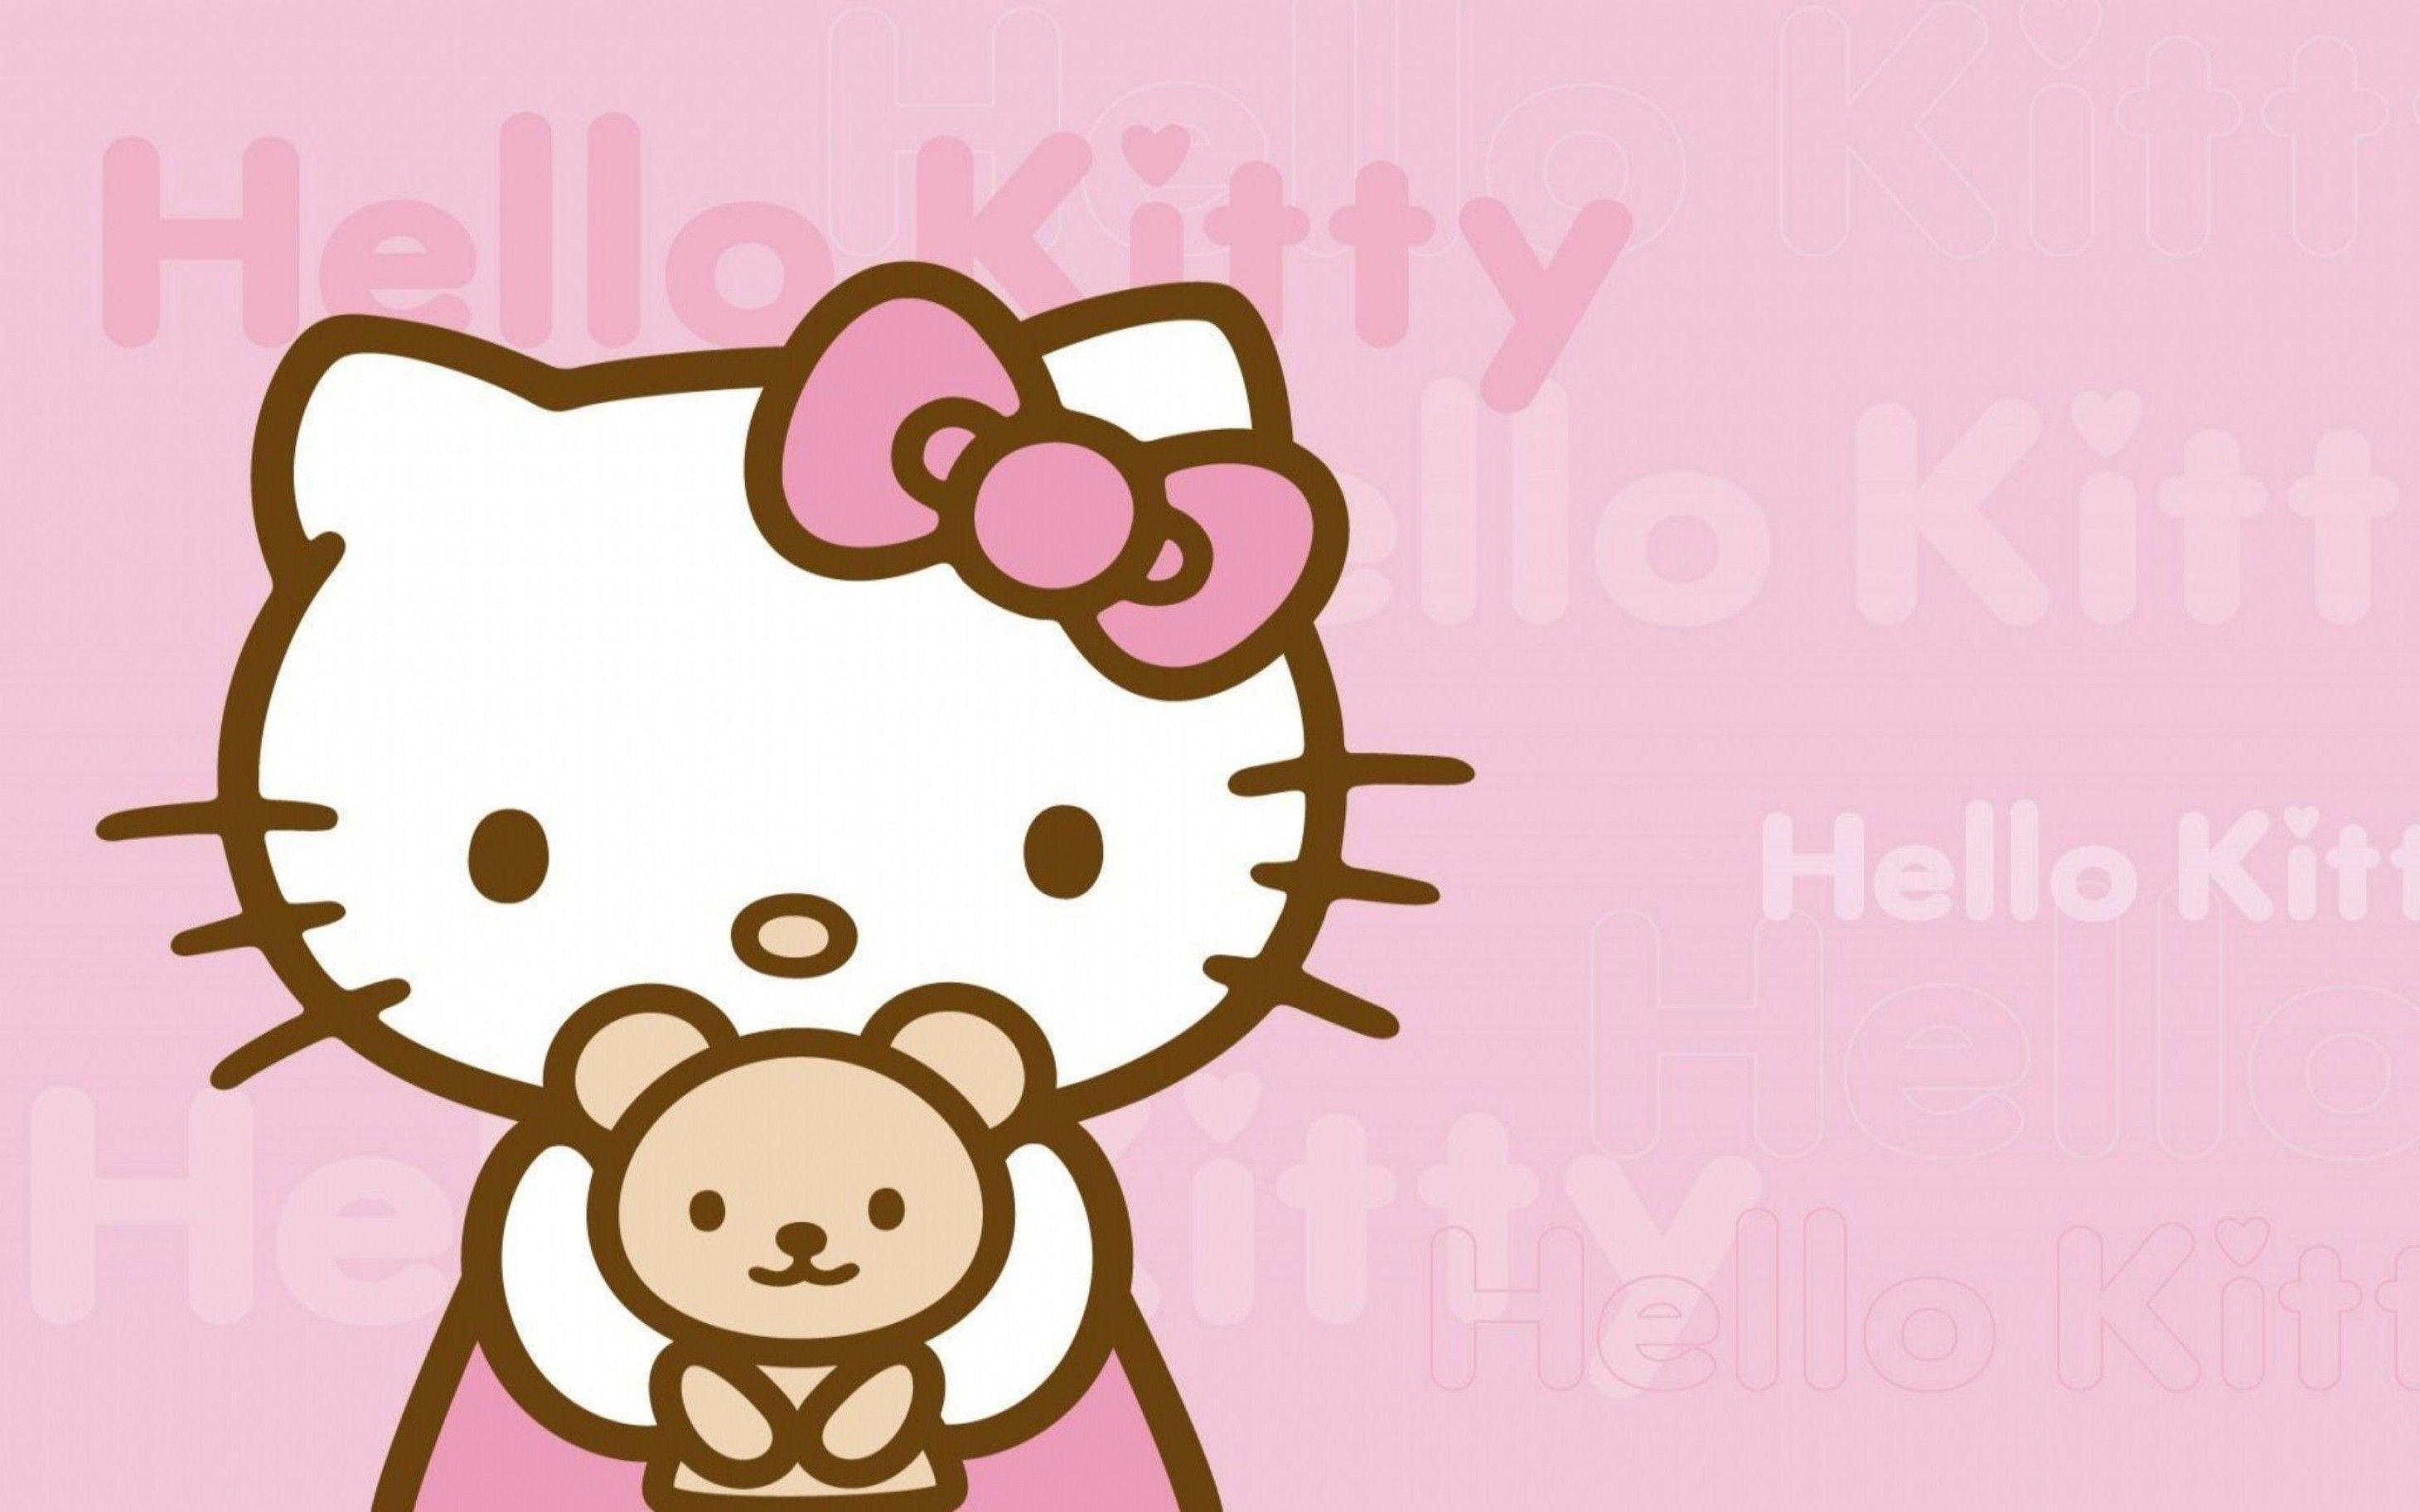 Hello kitty wallpapers for tablet wallpaper cave hello kitty wallpaper for android tablet voltagebd Image collections